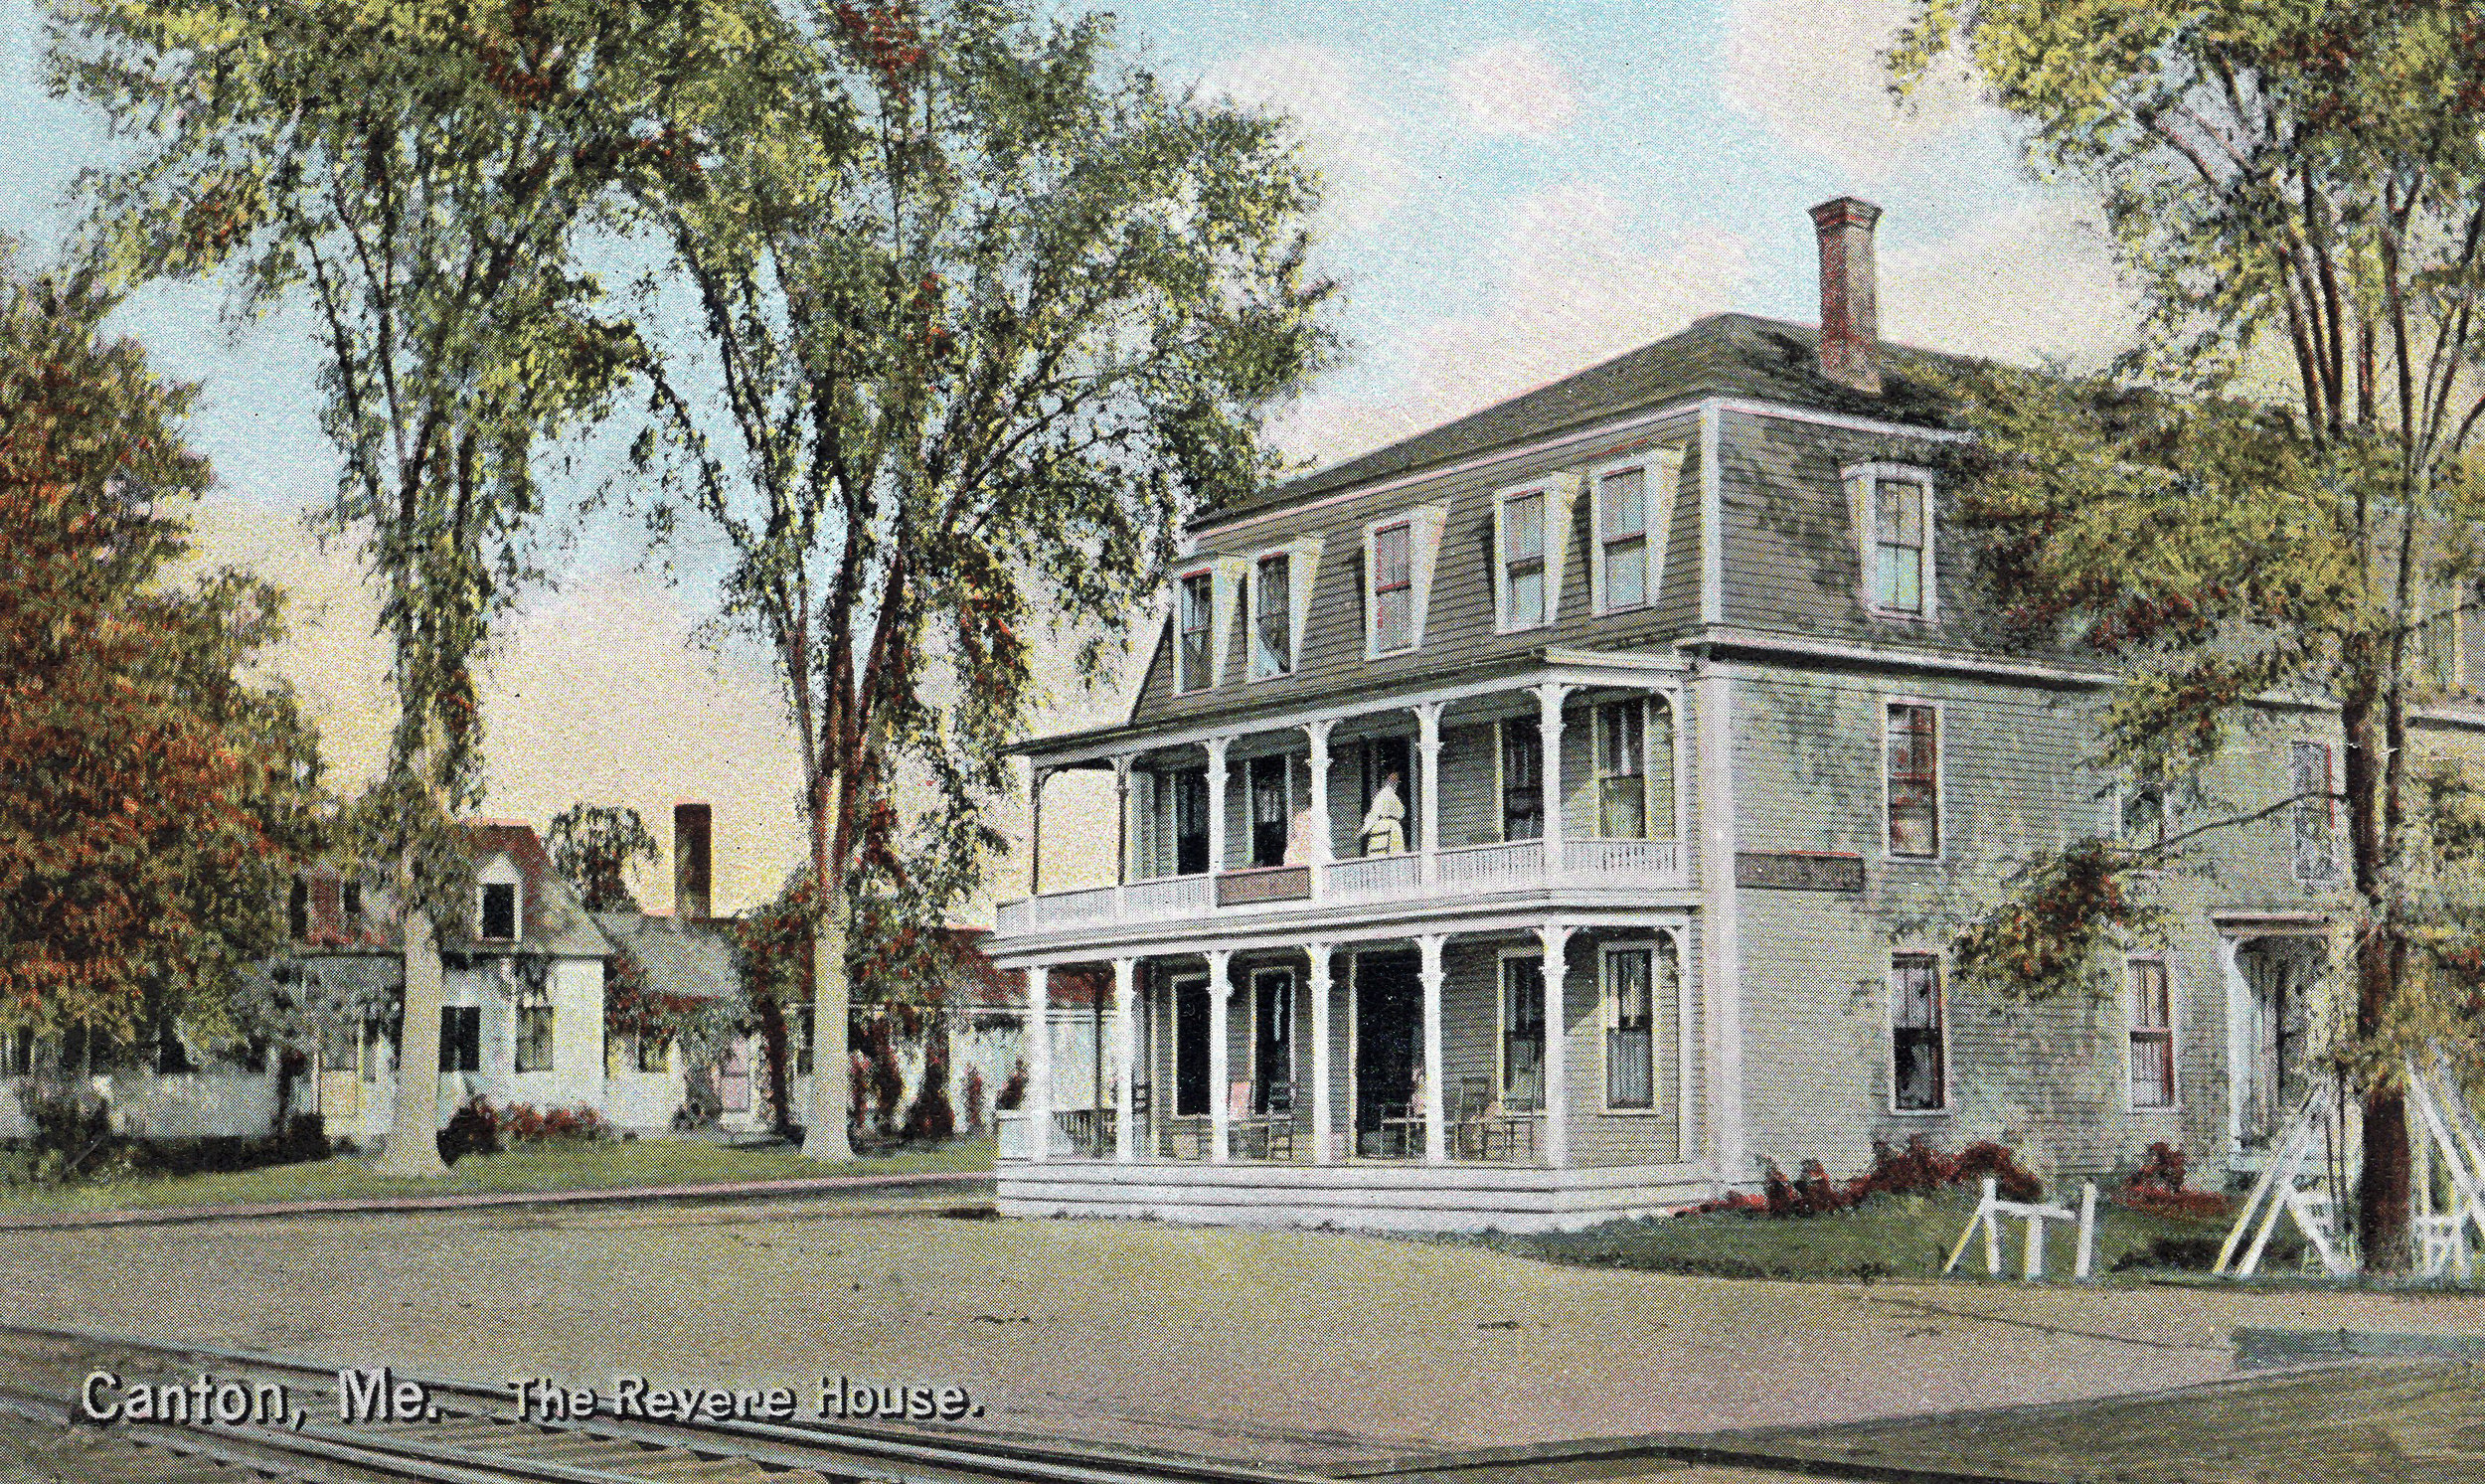 THEN: The Revere House Hotel 1914